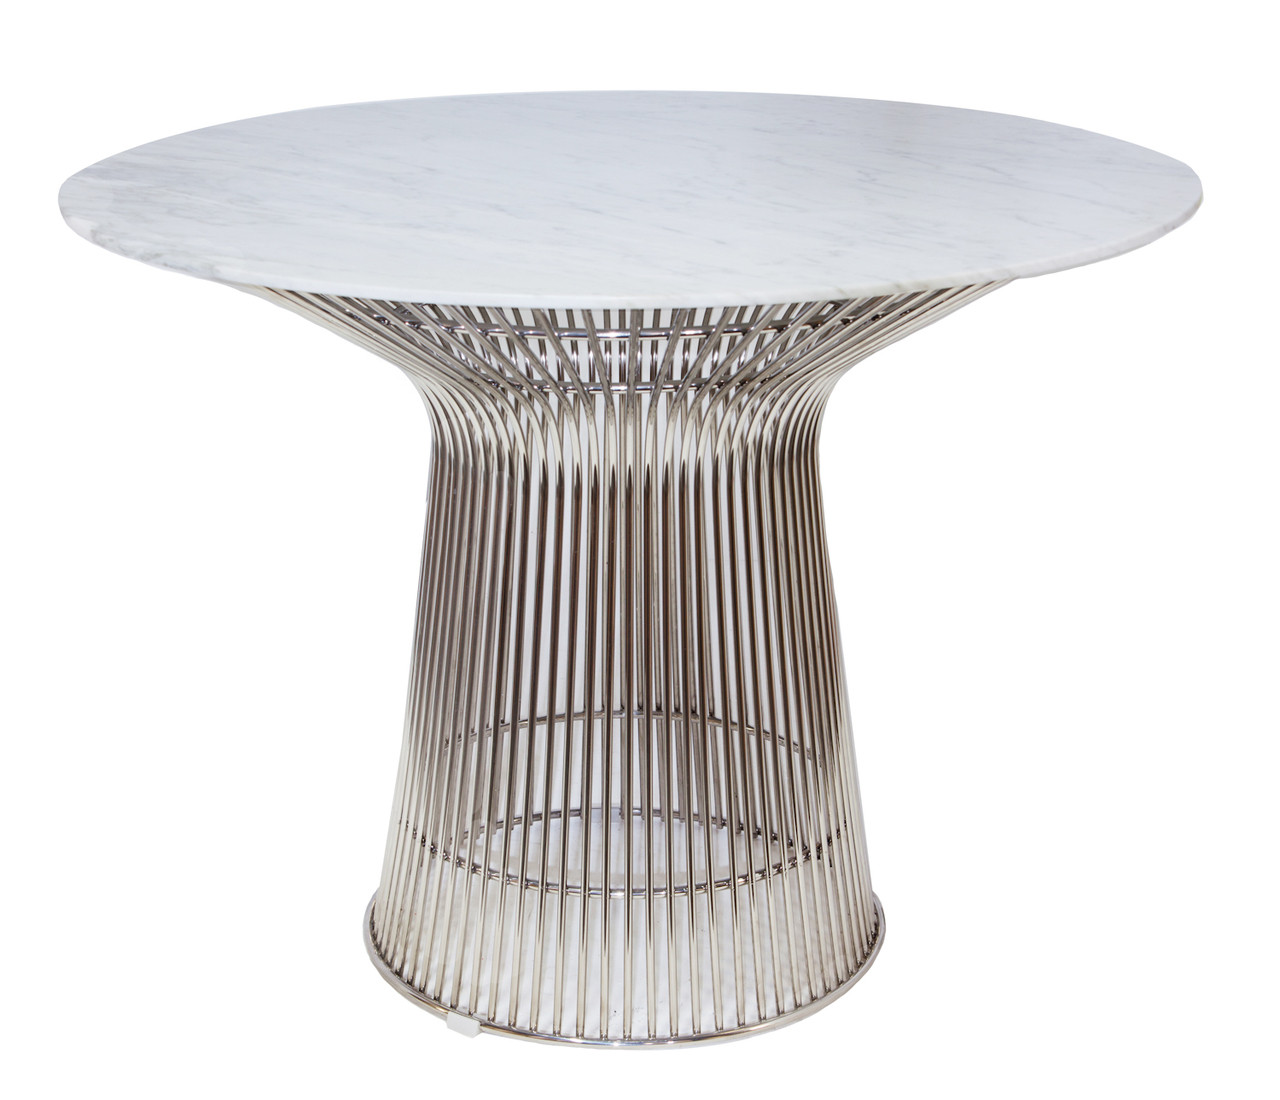 Replica Warren Platner - Wire Dining Table - Stainless Steel - Marble Top - 120cm